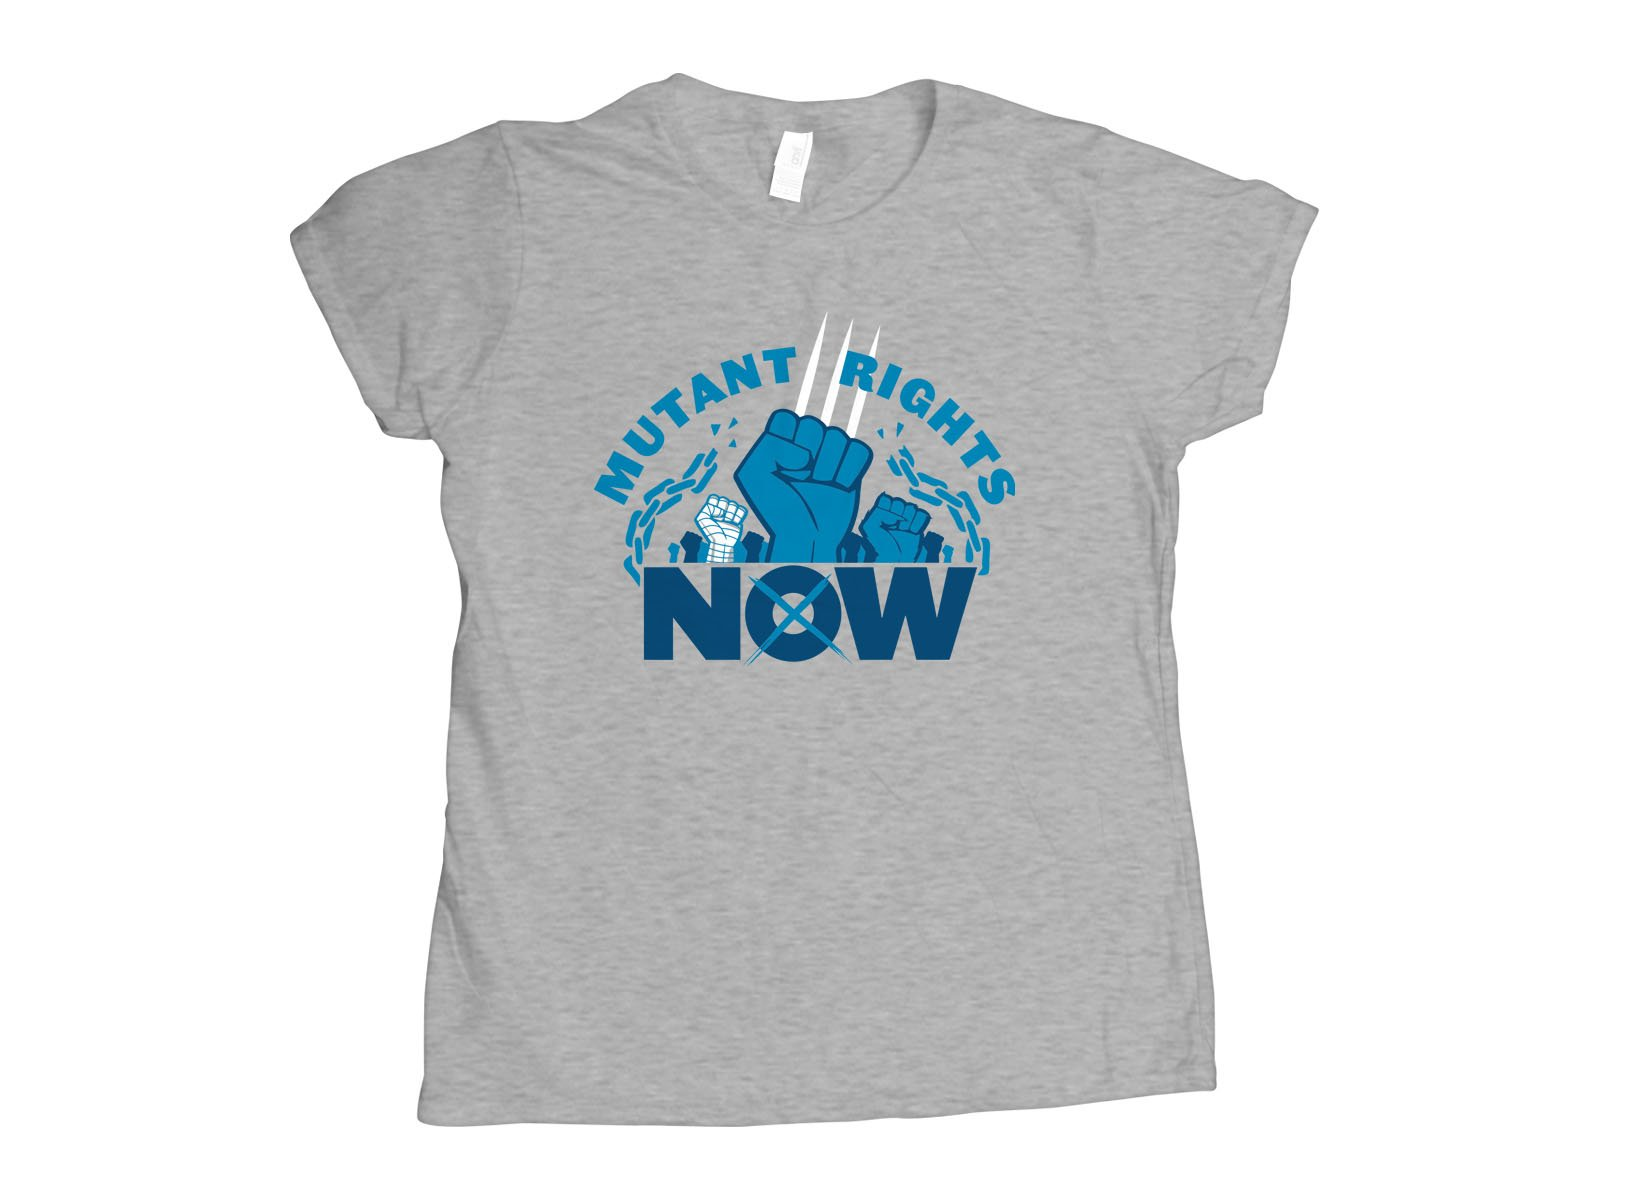 Mutant Rights Now! on Womens T-Shirt